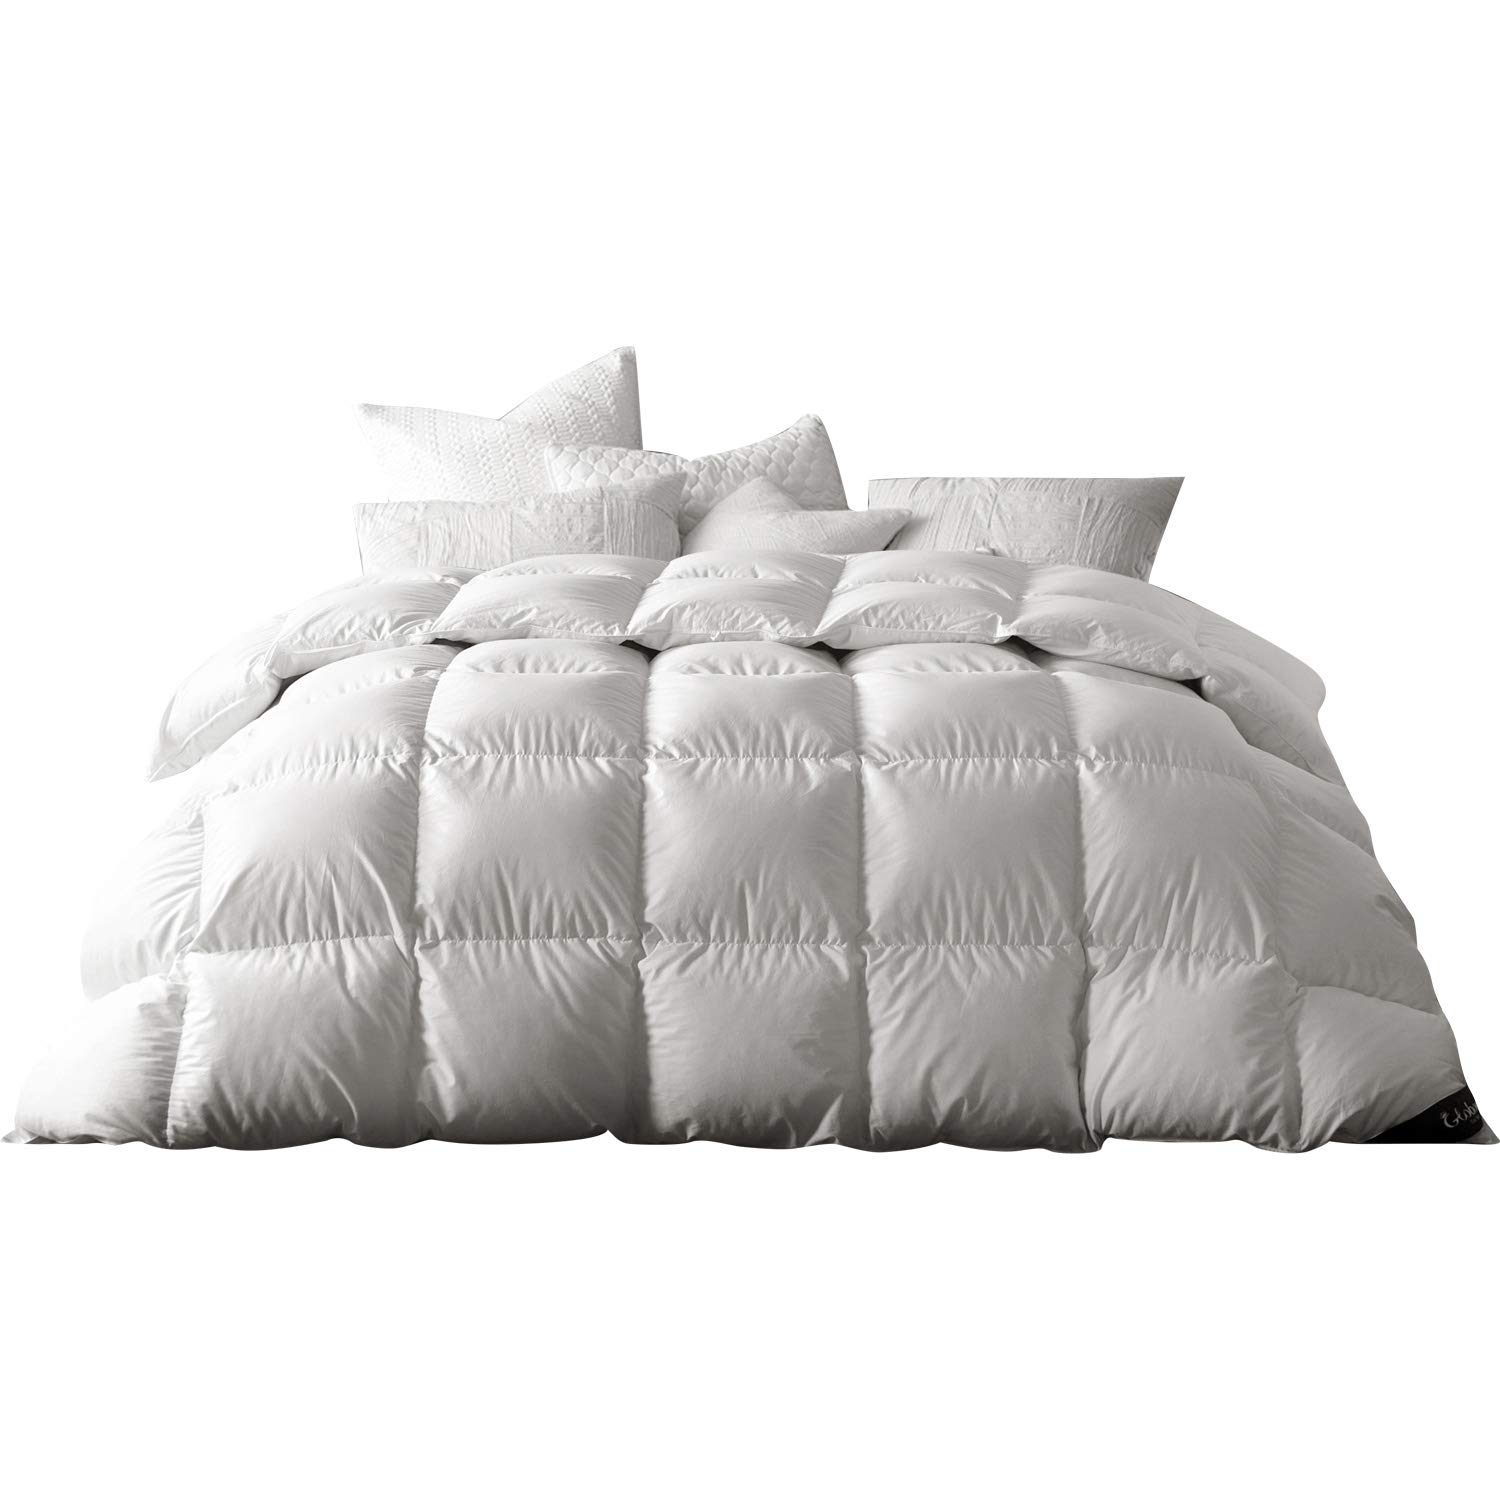 Globon Down Comforters Reviews